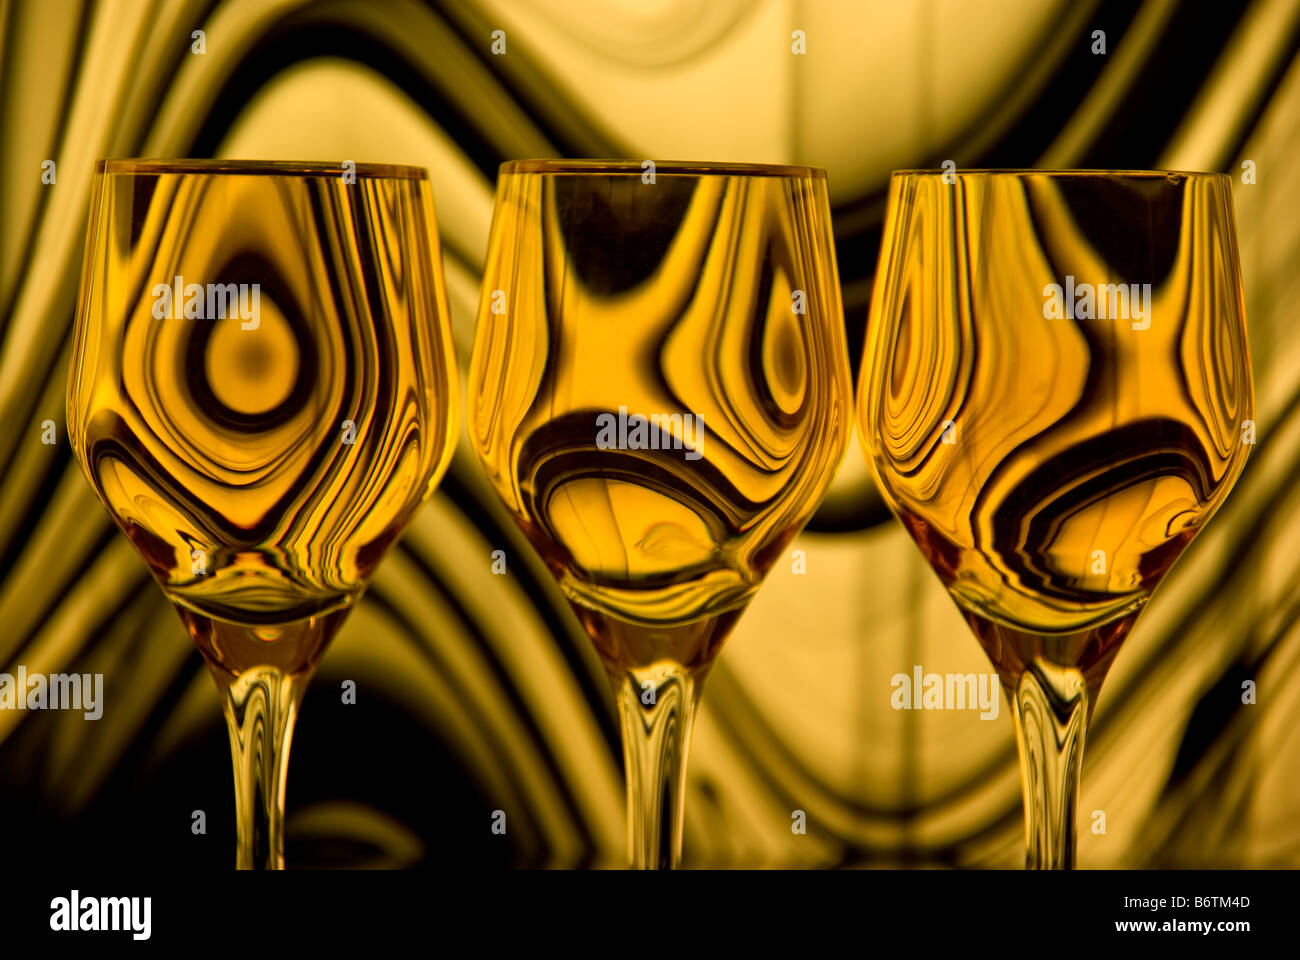 Close up of three wine glasses with a background of gold and black swirling lines reflected in each glass. Stock Photo